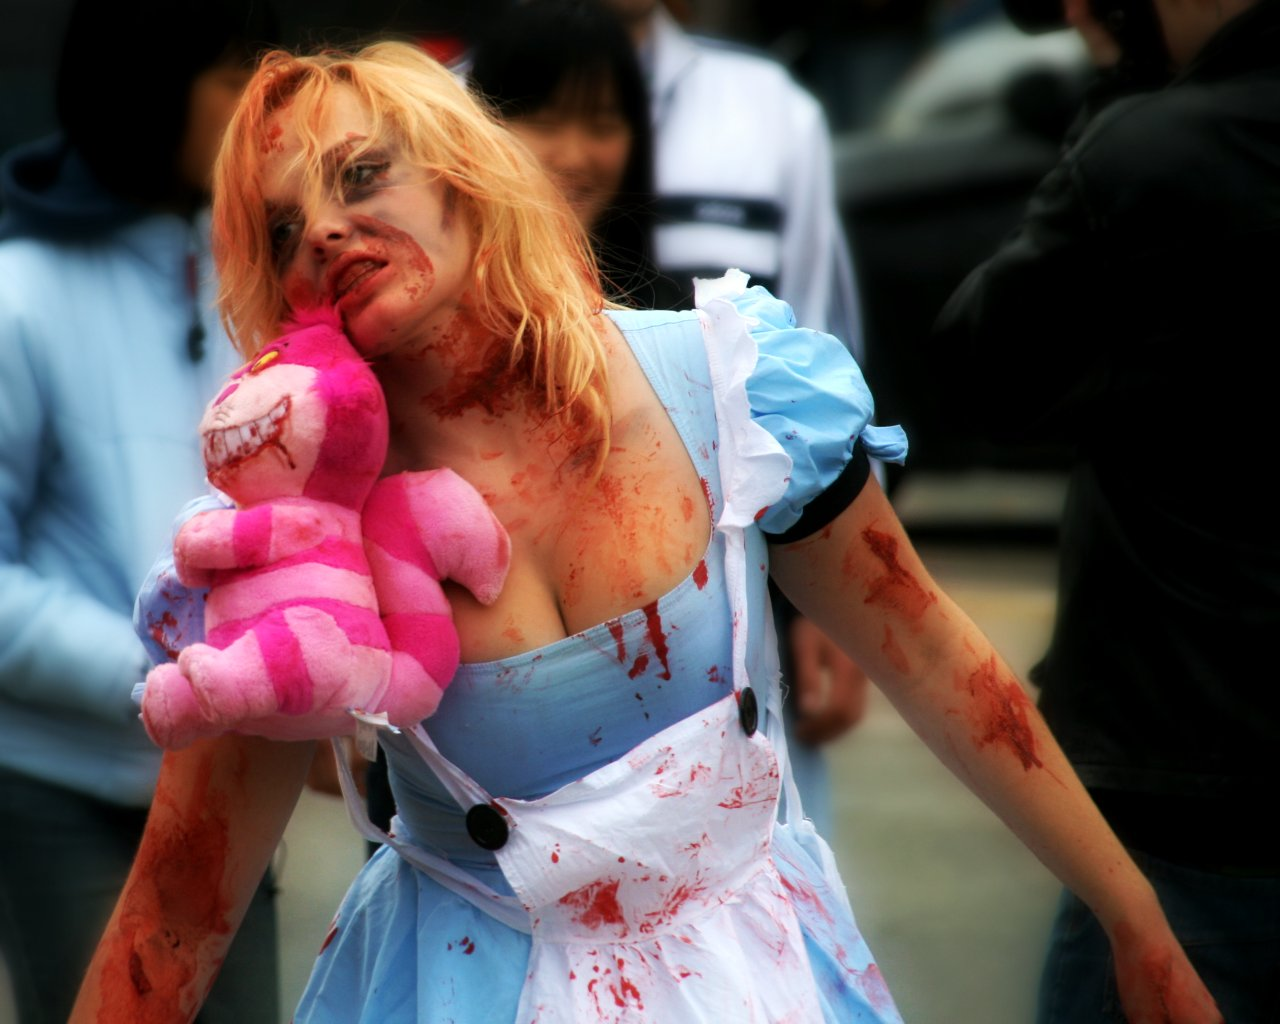 Zombie Alice by Paul Henman